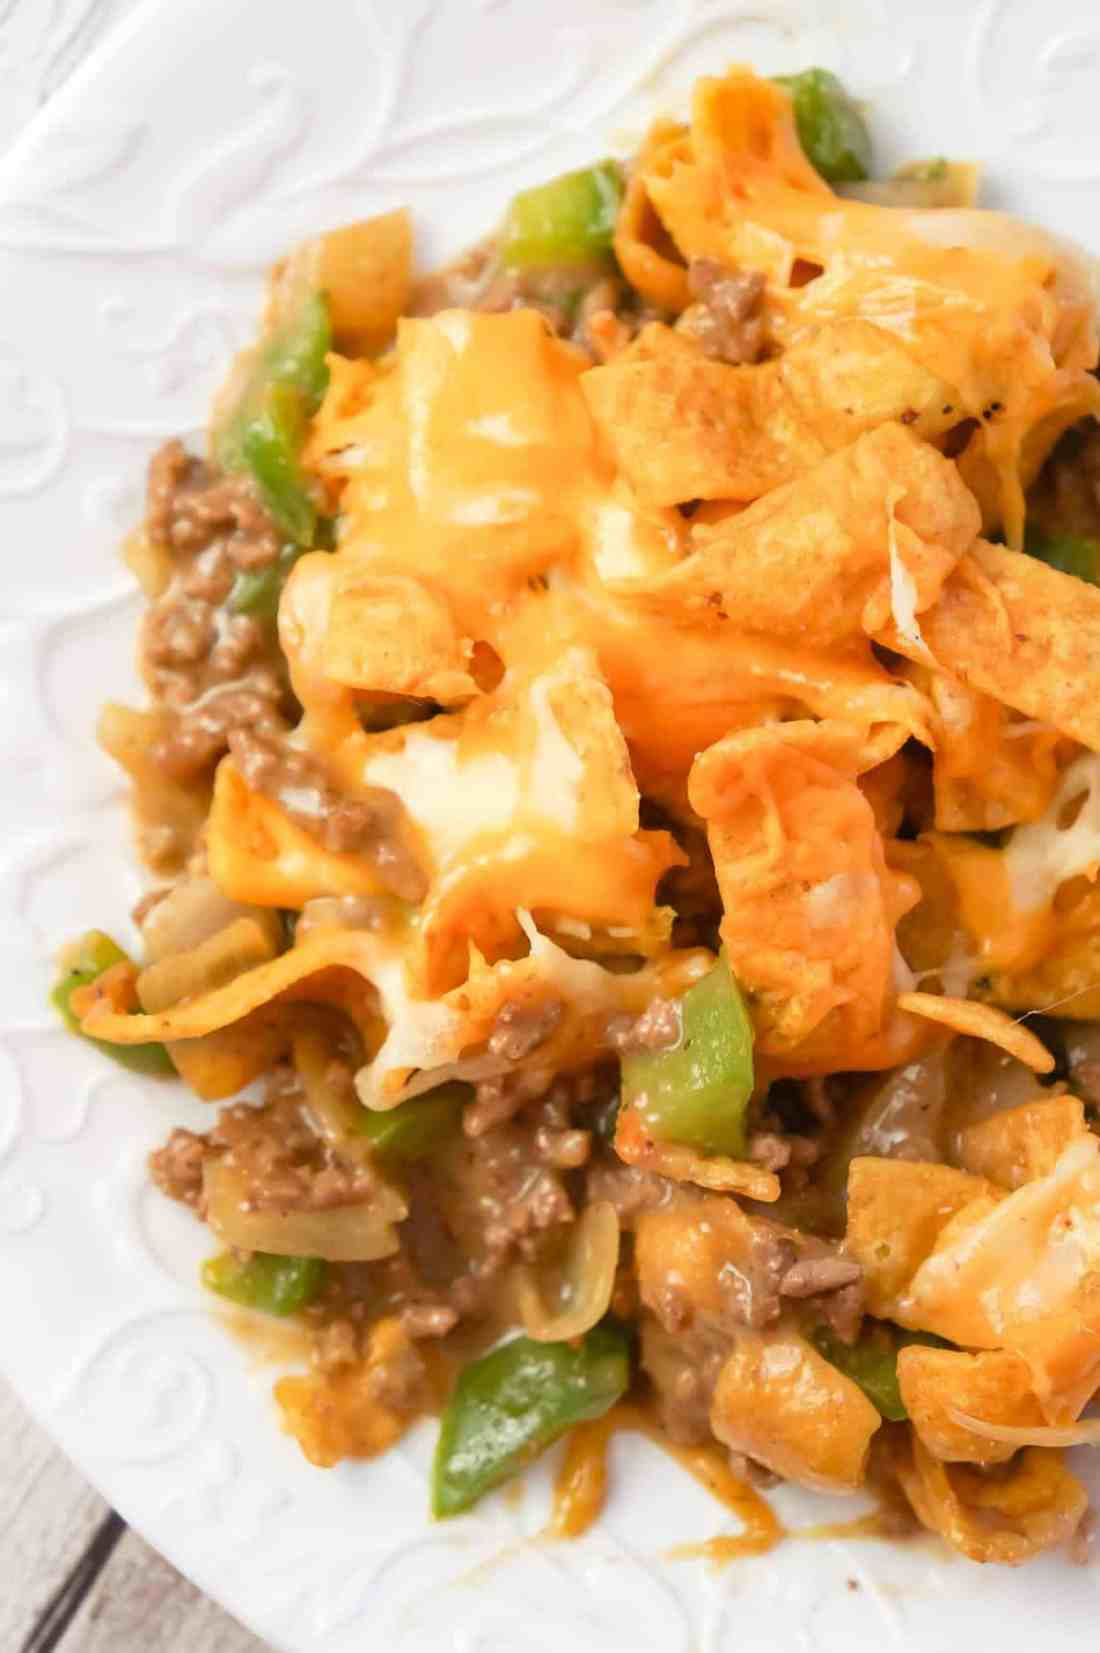 Philly Cheese Steak Frito Pie is an easy ground beef casserole recipe loaded with green peppers, onions, Fritos corn chips and shredded mozzarella and cheddar cheese.